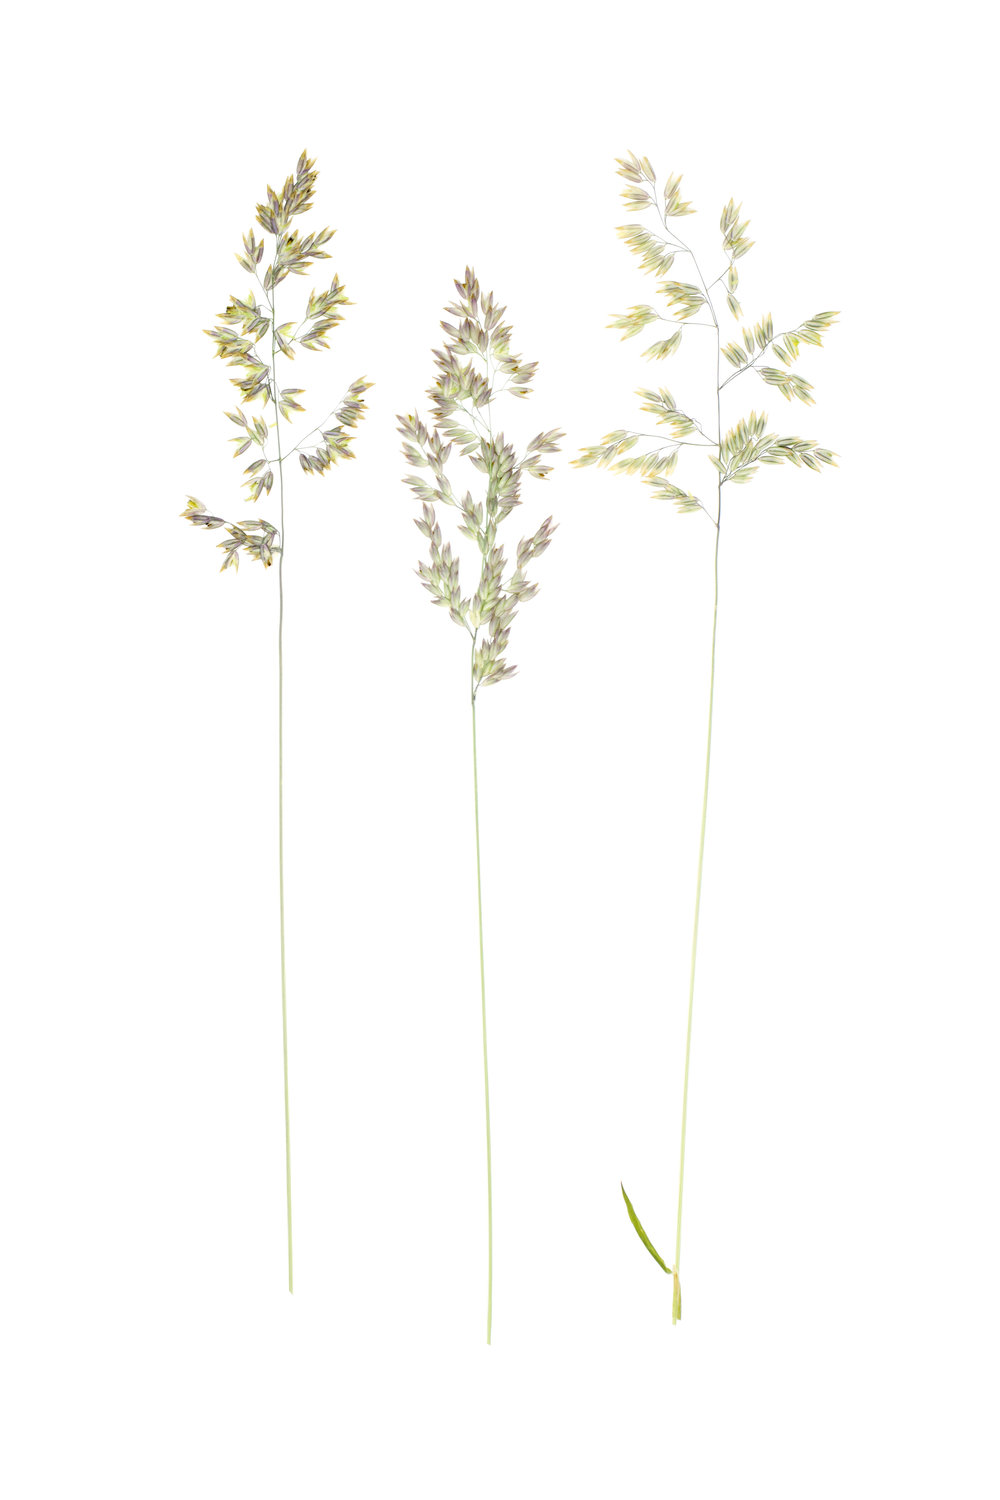 Velvet Grass or Yorkshire Fog / Holcus lanatus